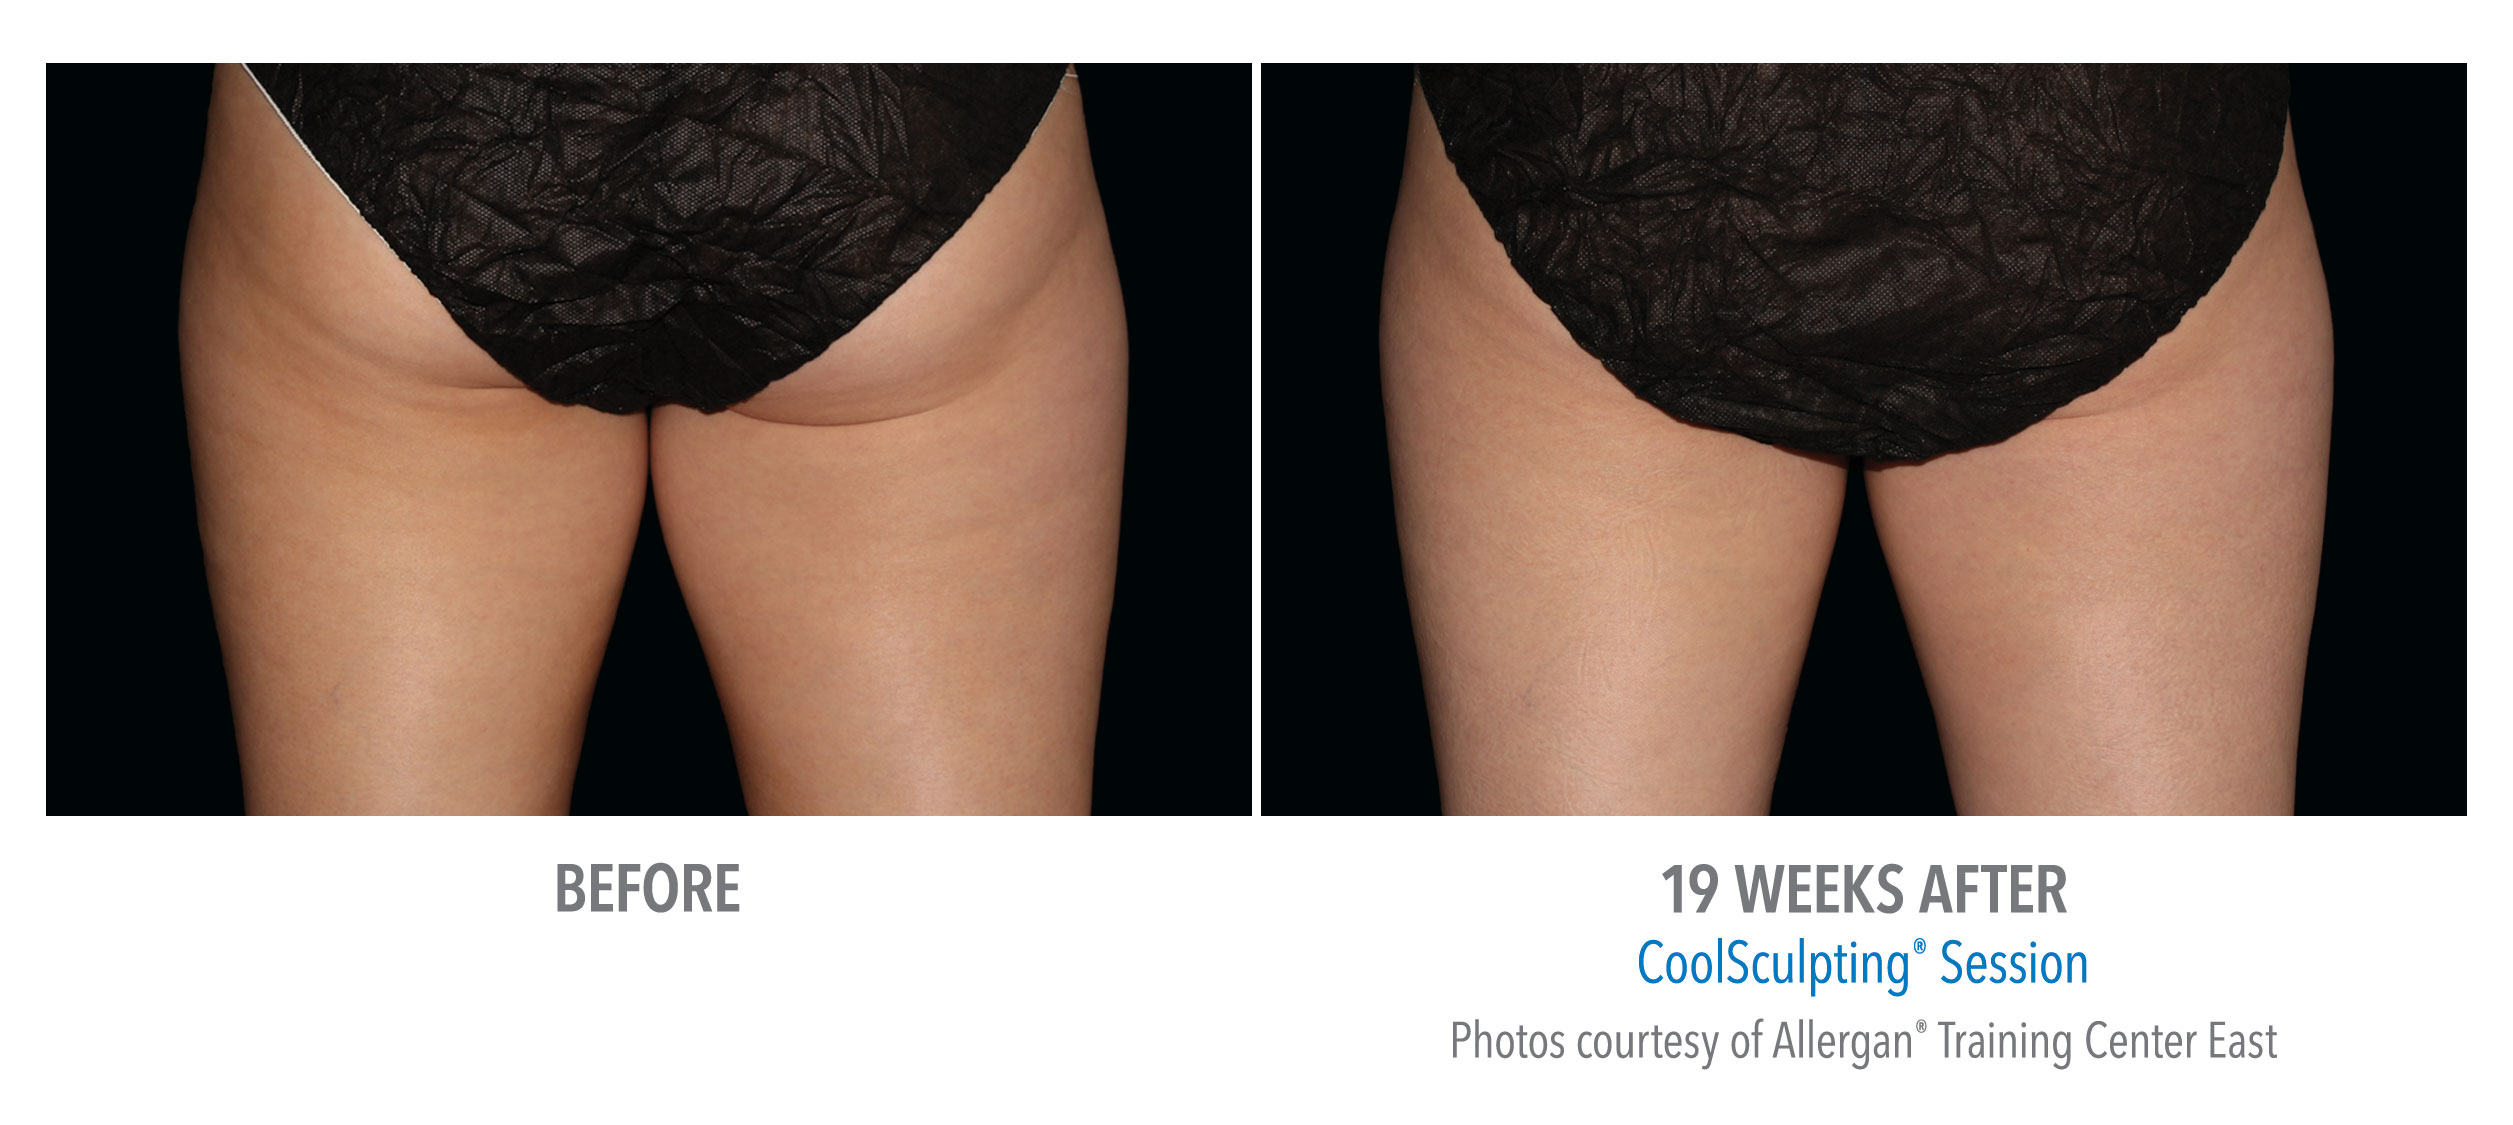 whittier-coolsculpting-thighs-inner-thigh-4